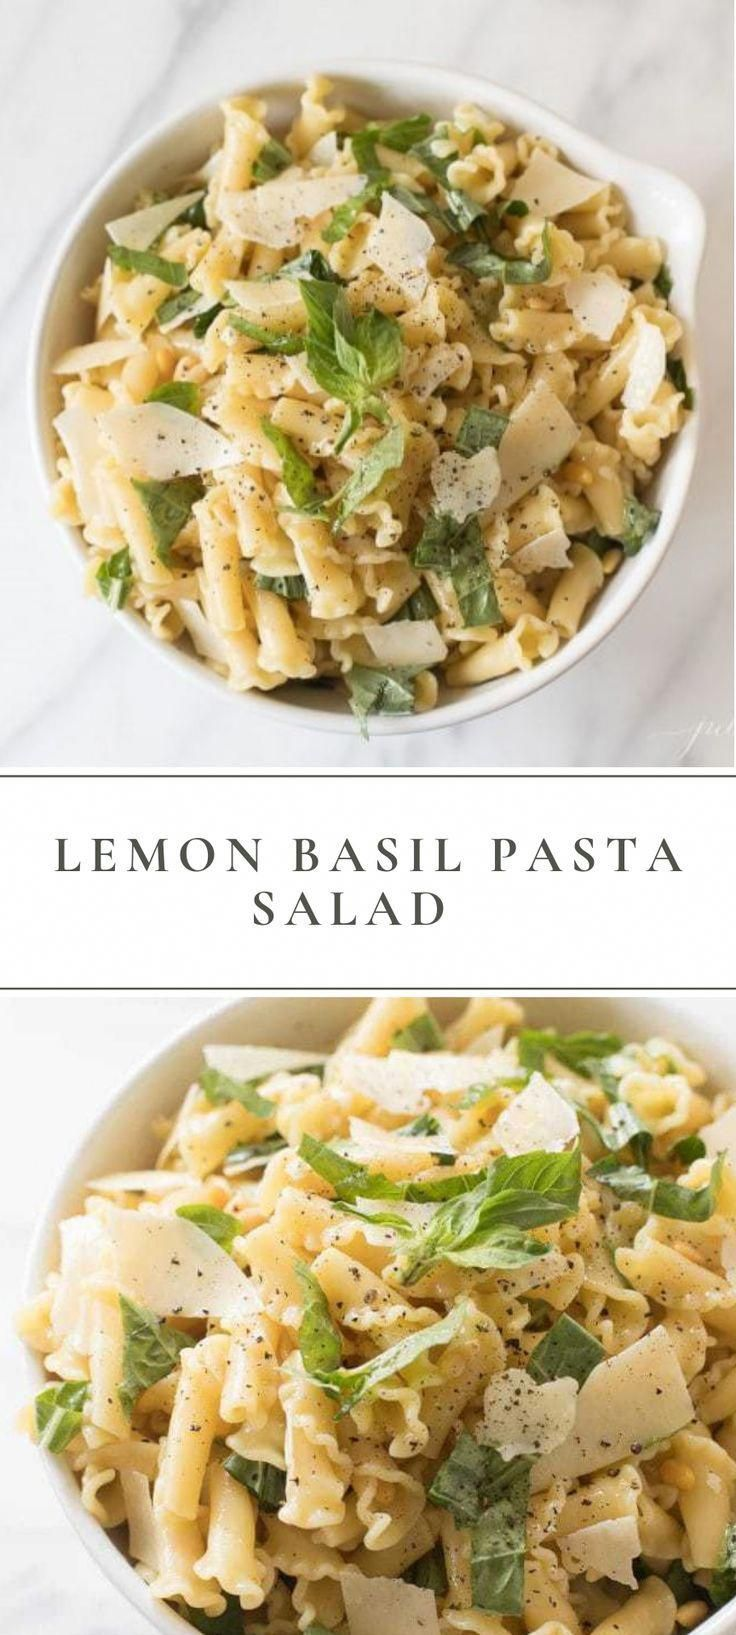 An easy Lemon Basil Pasta Salad recipe thats light and refreshing